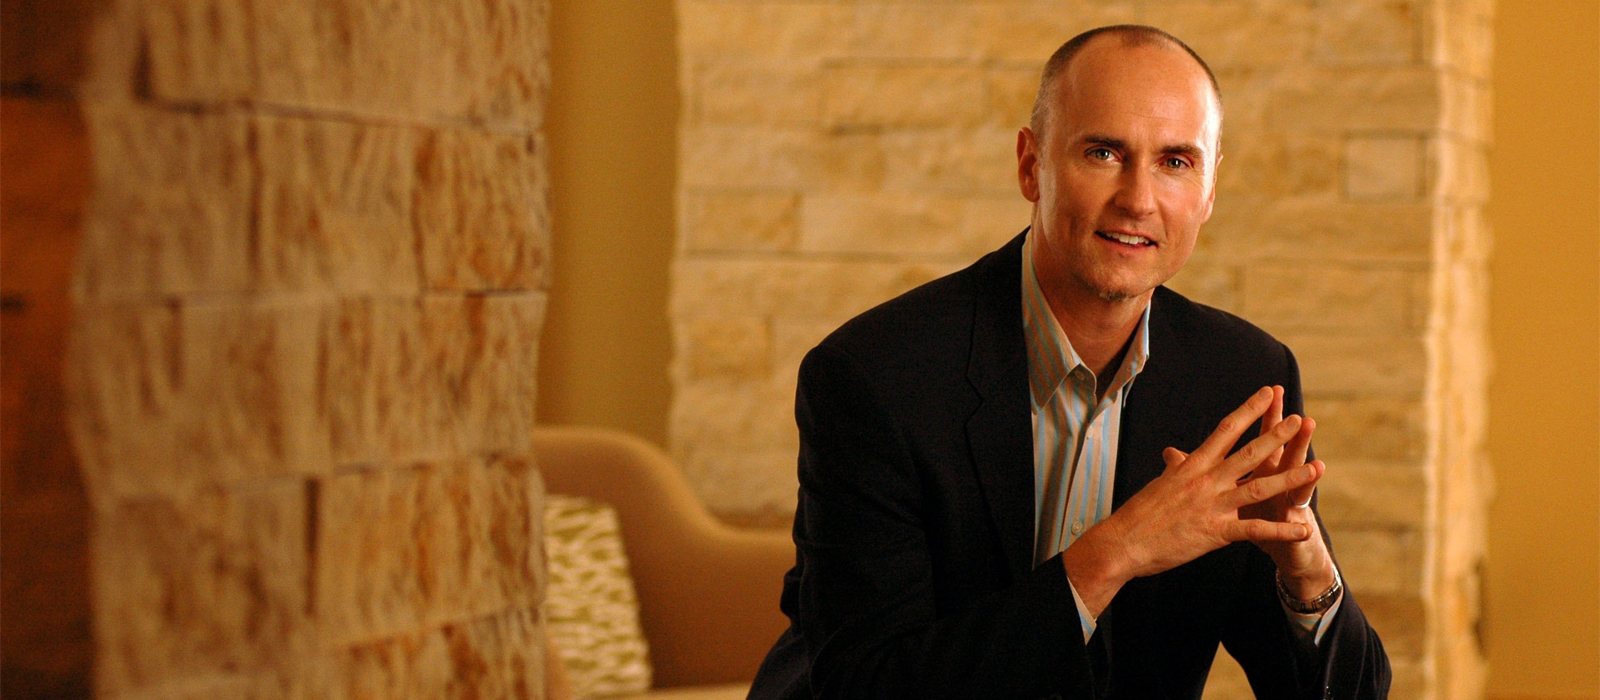 AirBNB's Head of Global Hospitality Chip Conley Speaks at Belmont